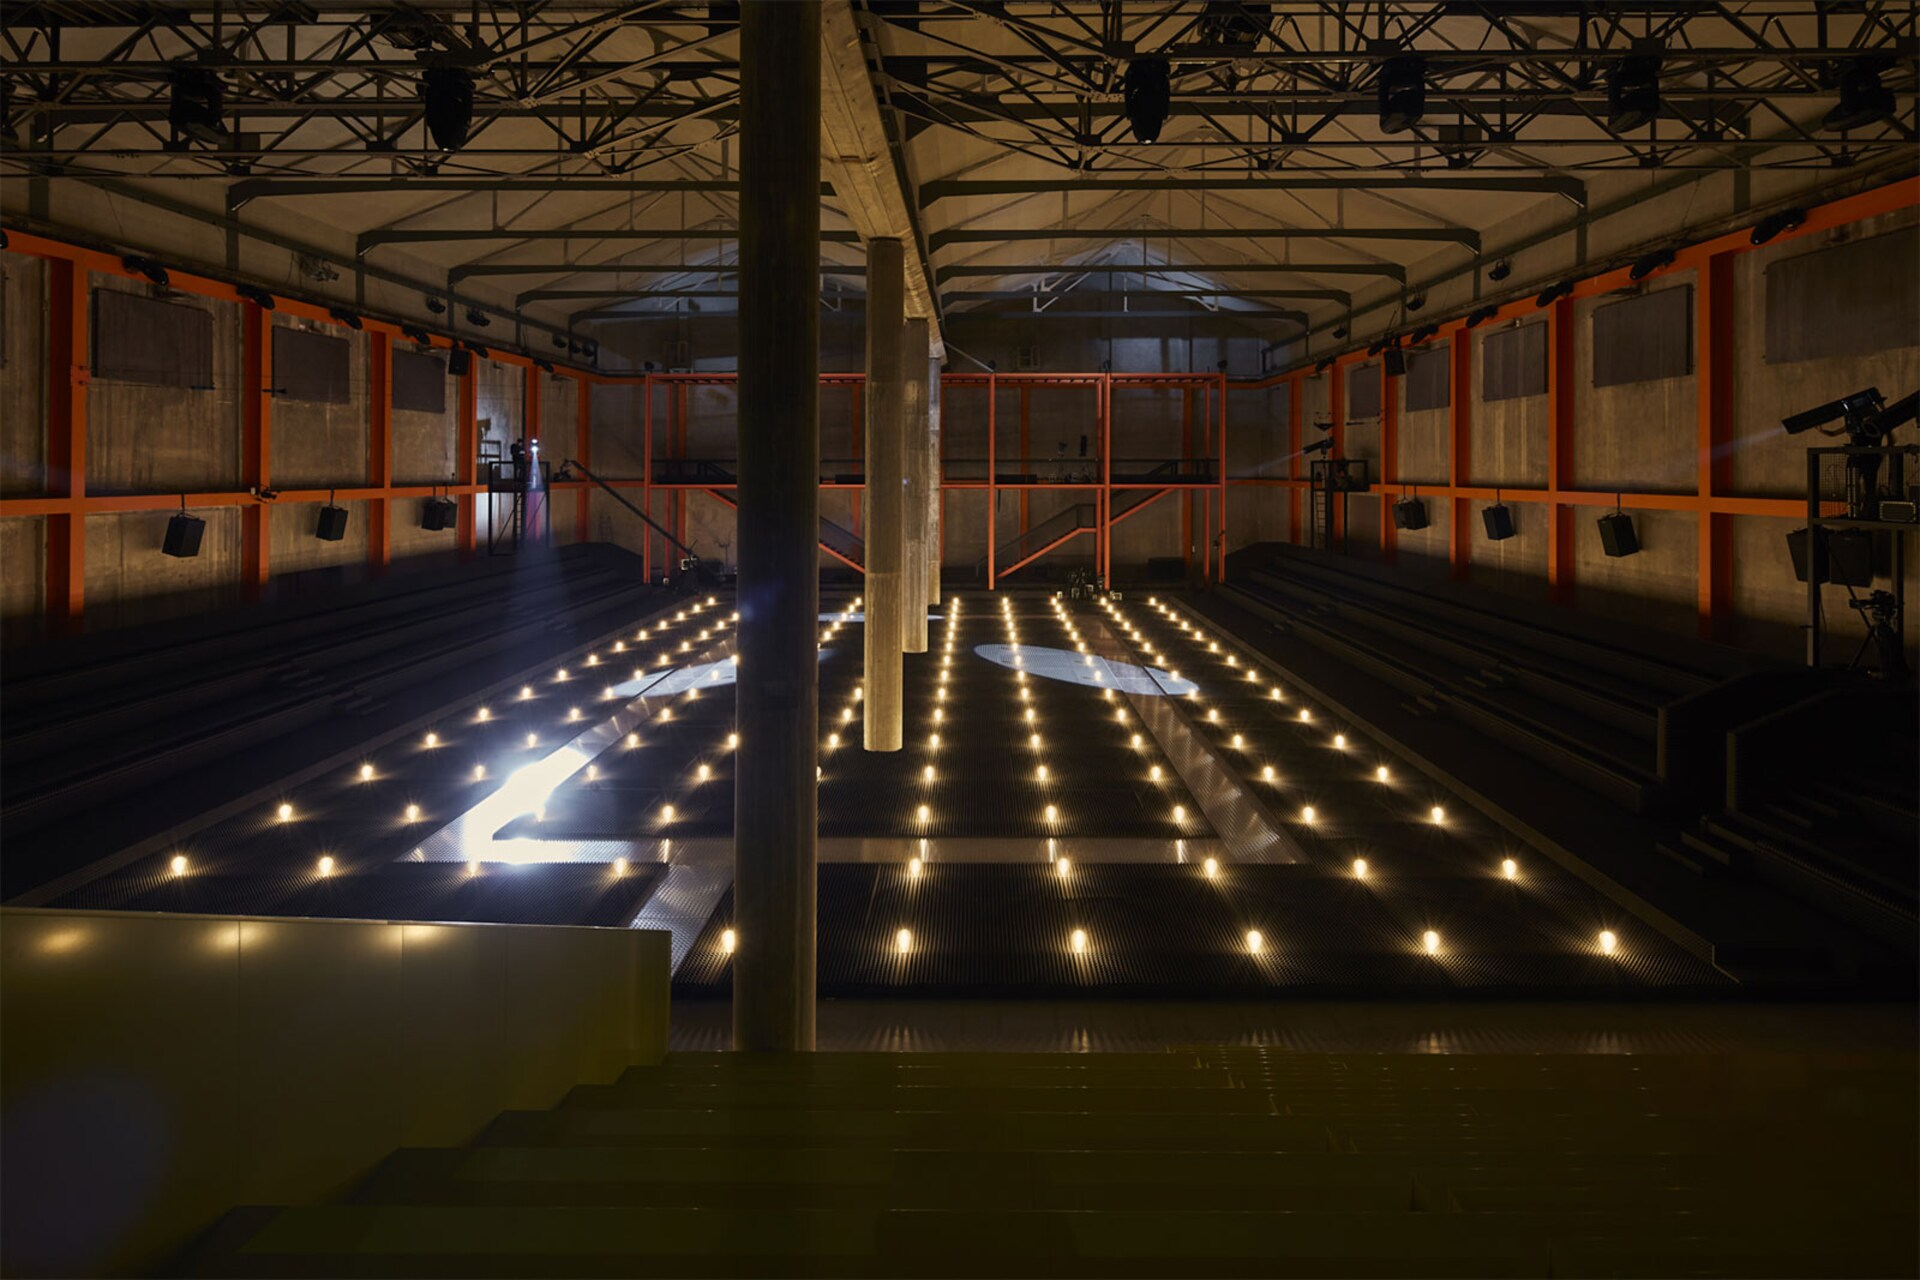 Prada Fall Winter 2019 Men's and Women's fashion show space detail 5 For the 2019 Fall/Winter Prada shows – both Men's and Women's, AMO has created a theatrical field of lights in the grand hall of the Deposito, the multifunctional venue for performances that is part of the Fondazione Prada complex.